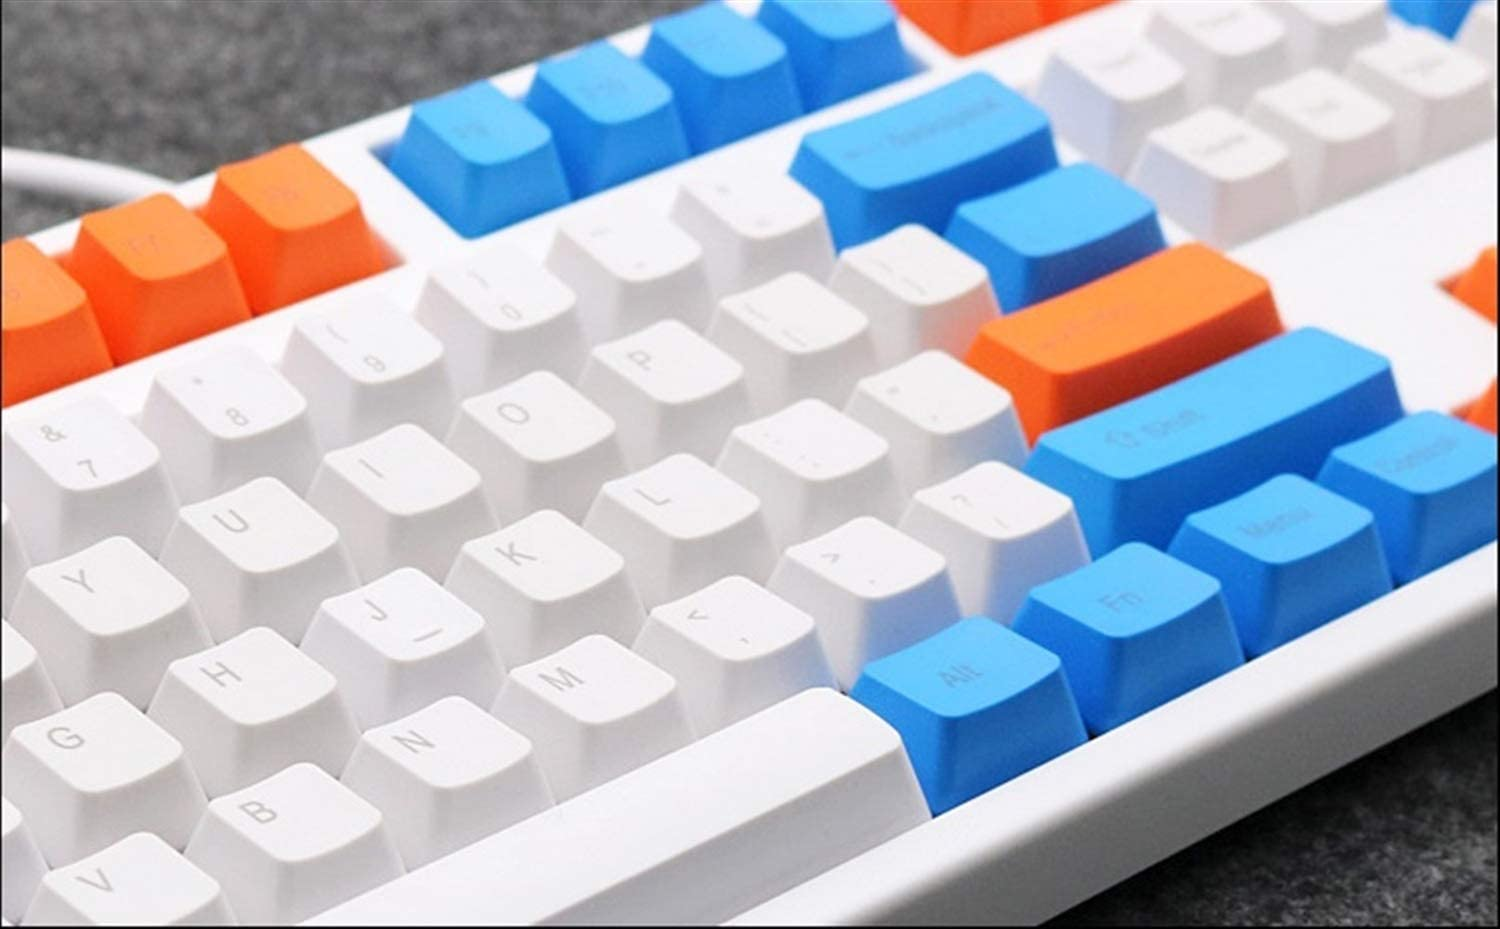 Keyboard keycaps Theme Keycaps PBT 108-key Three Colors Mix Profile for Switches of Mechanical Keyboard Color : 108 Key